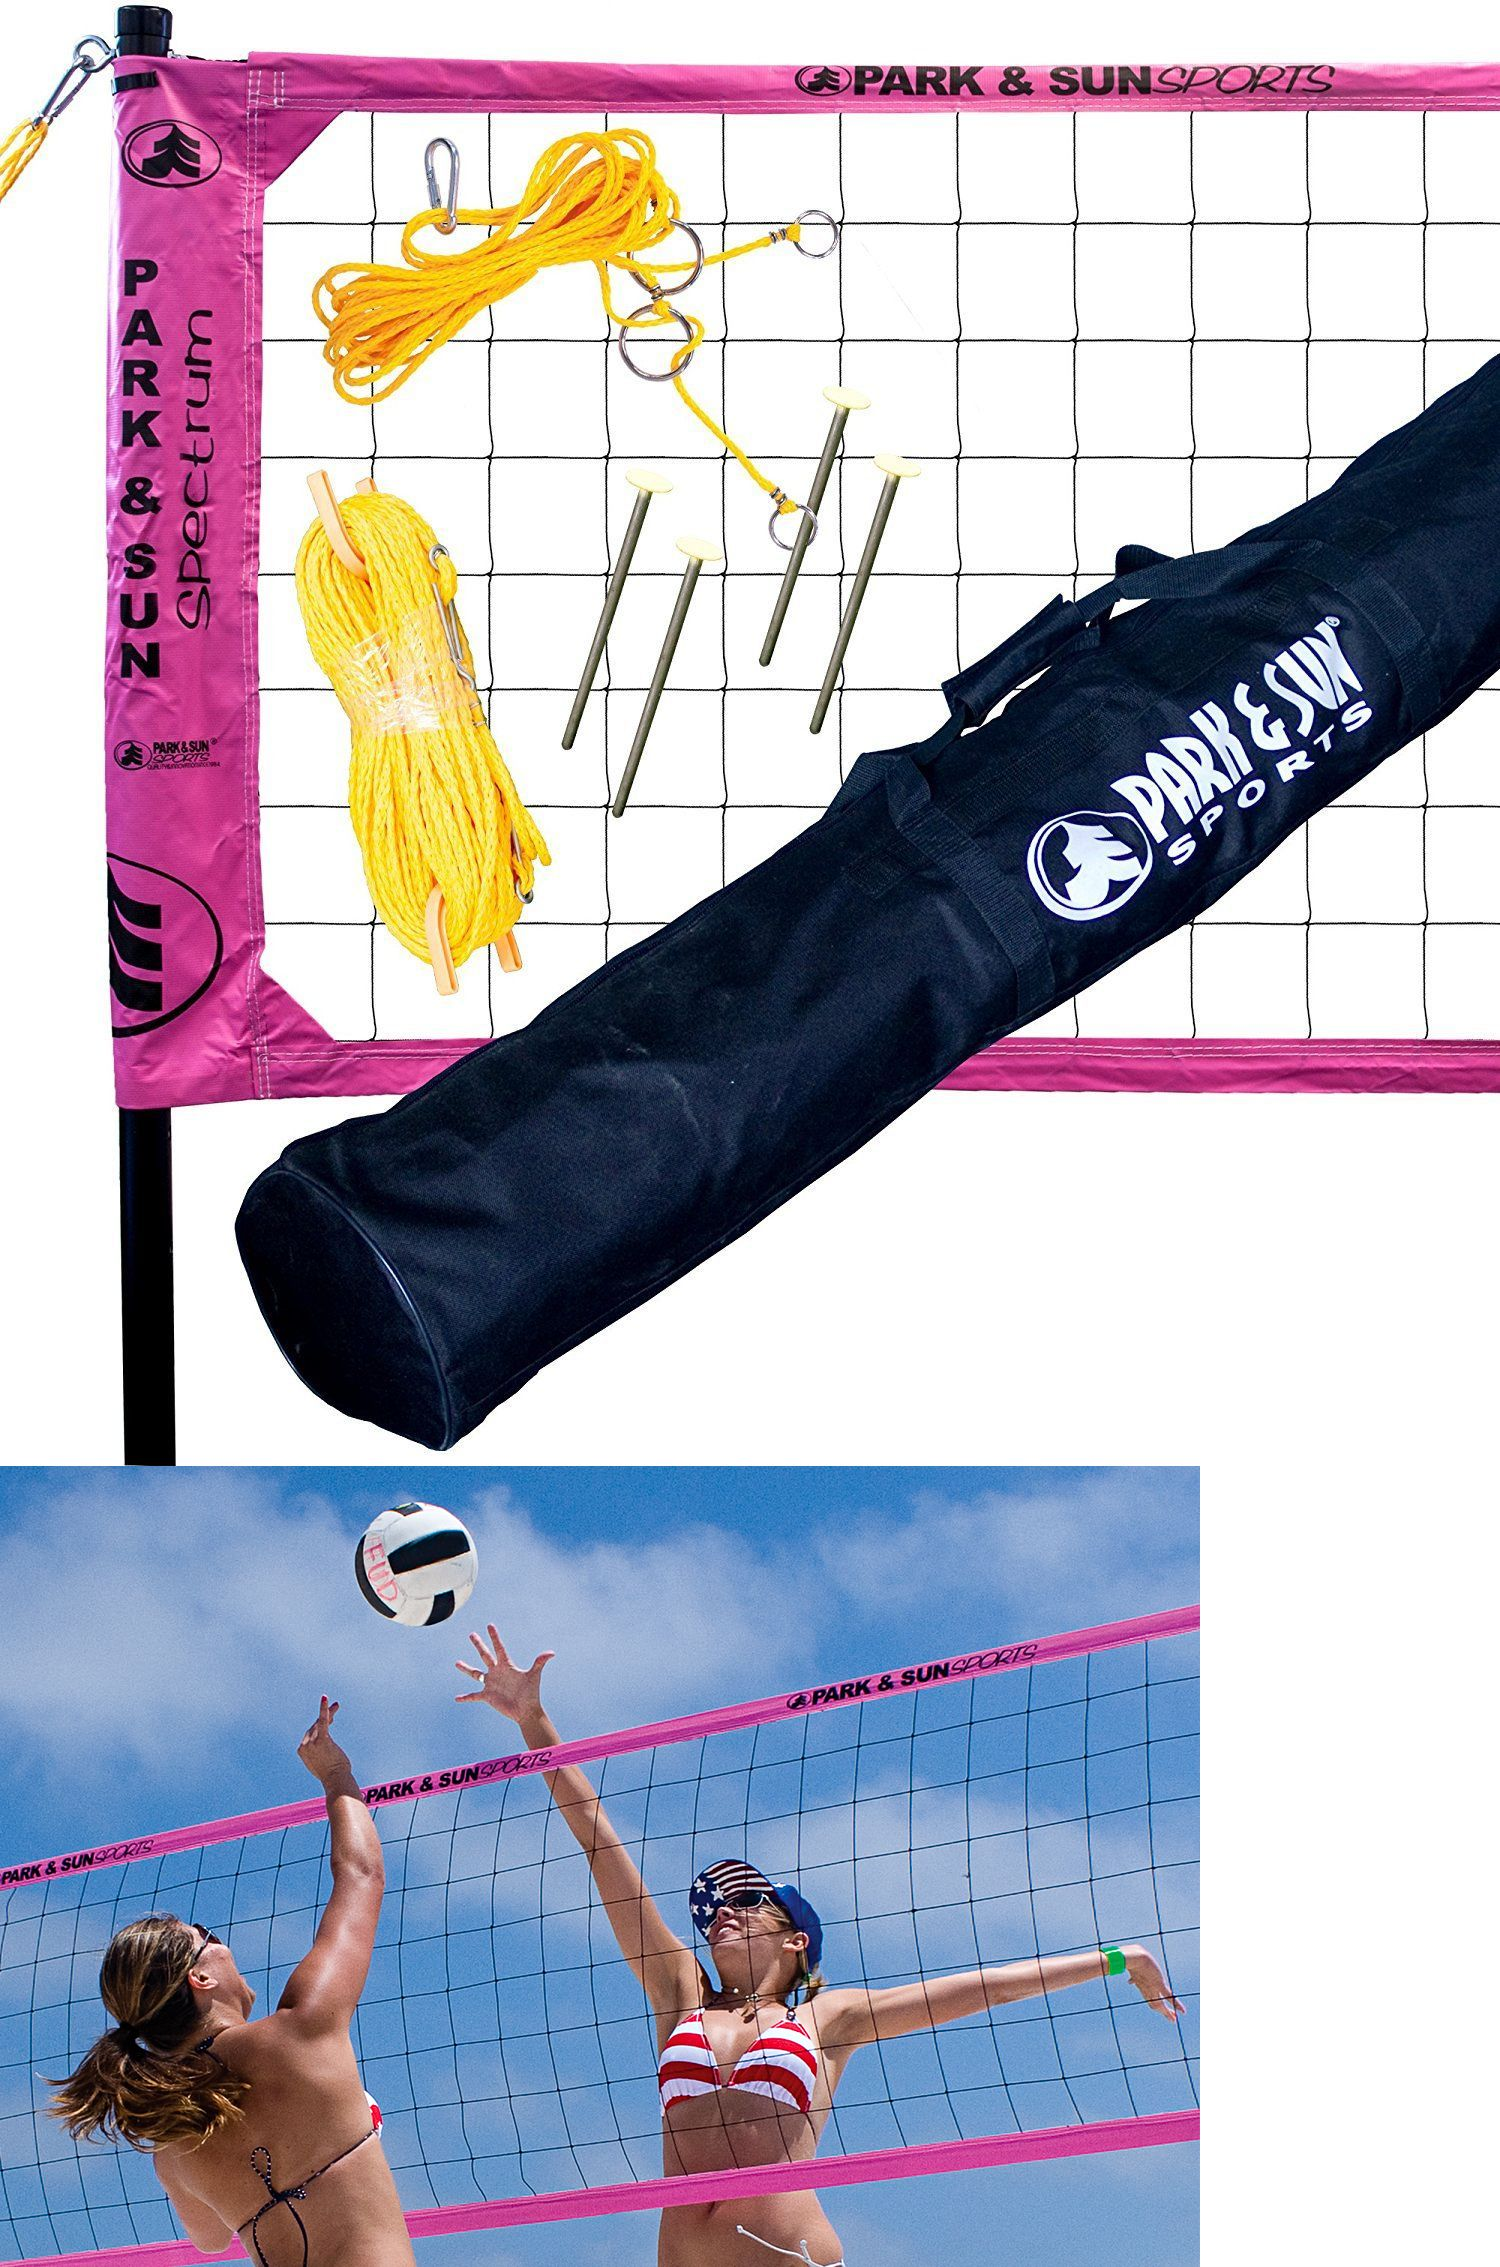 nets 159131 park and sun sports spectrum 2000 portable outdoor